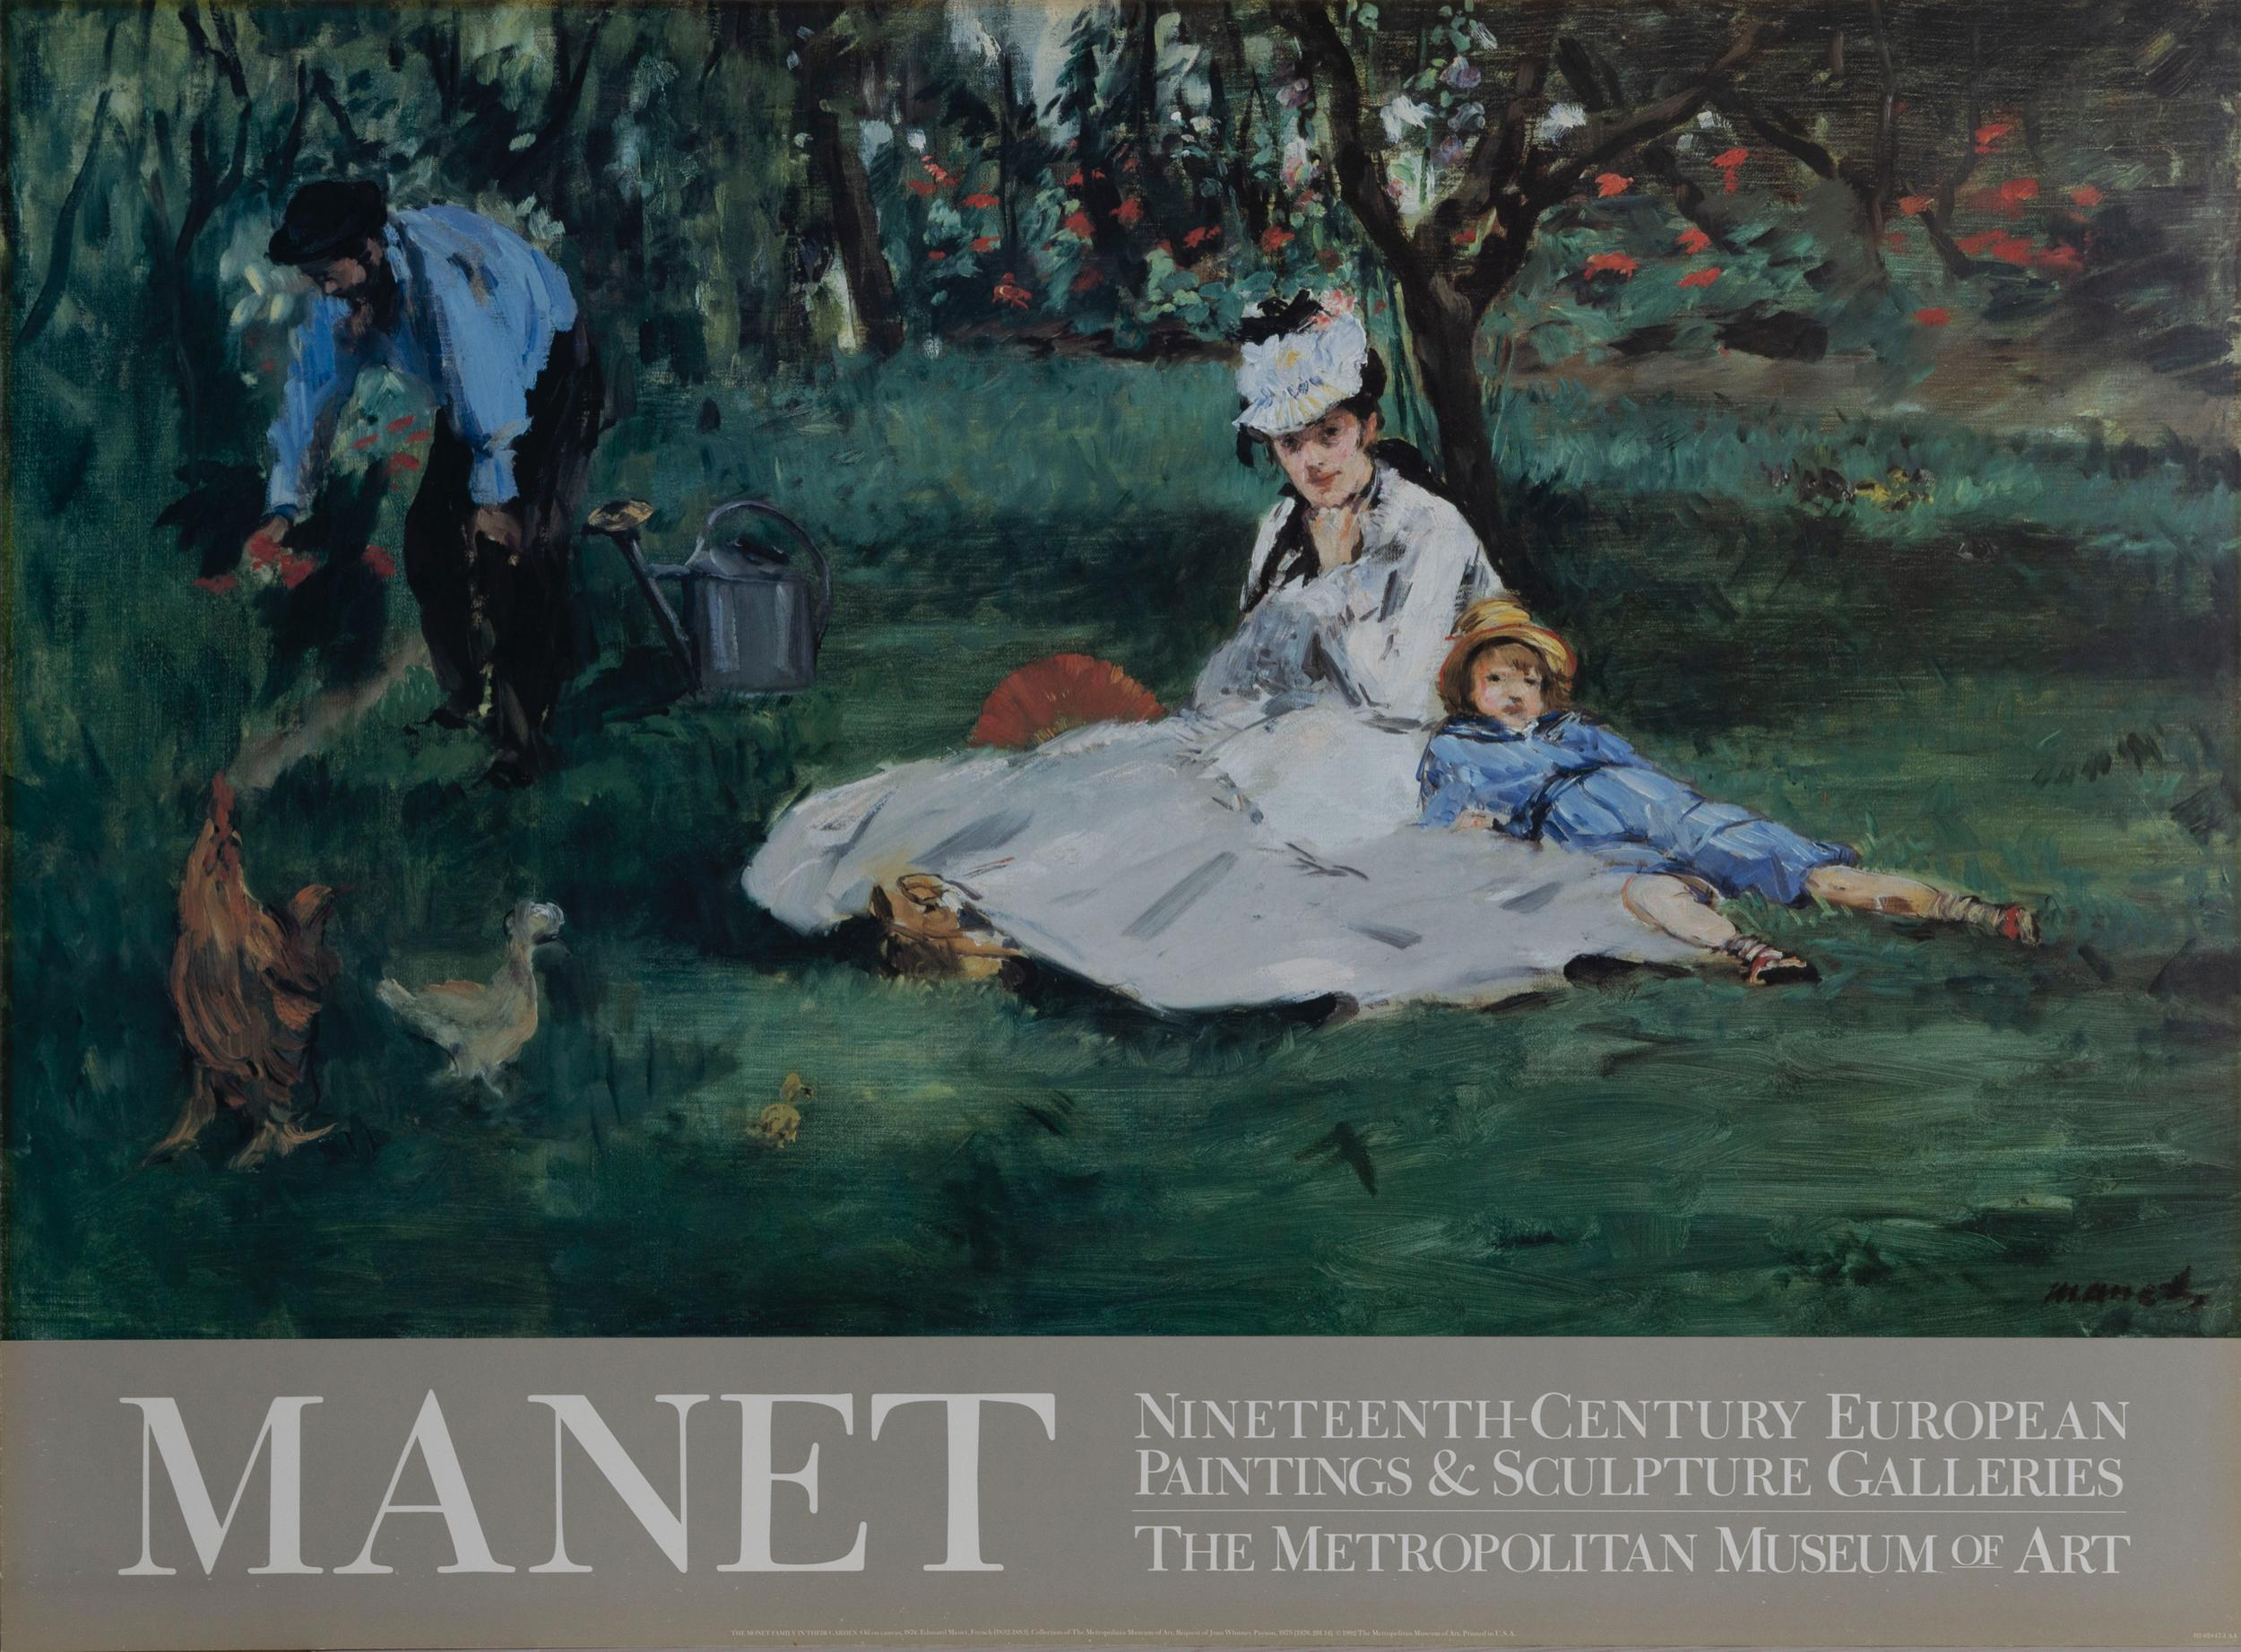 Edouard Manet, The Monet Family in Their Garden, Poster on board